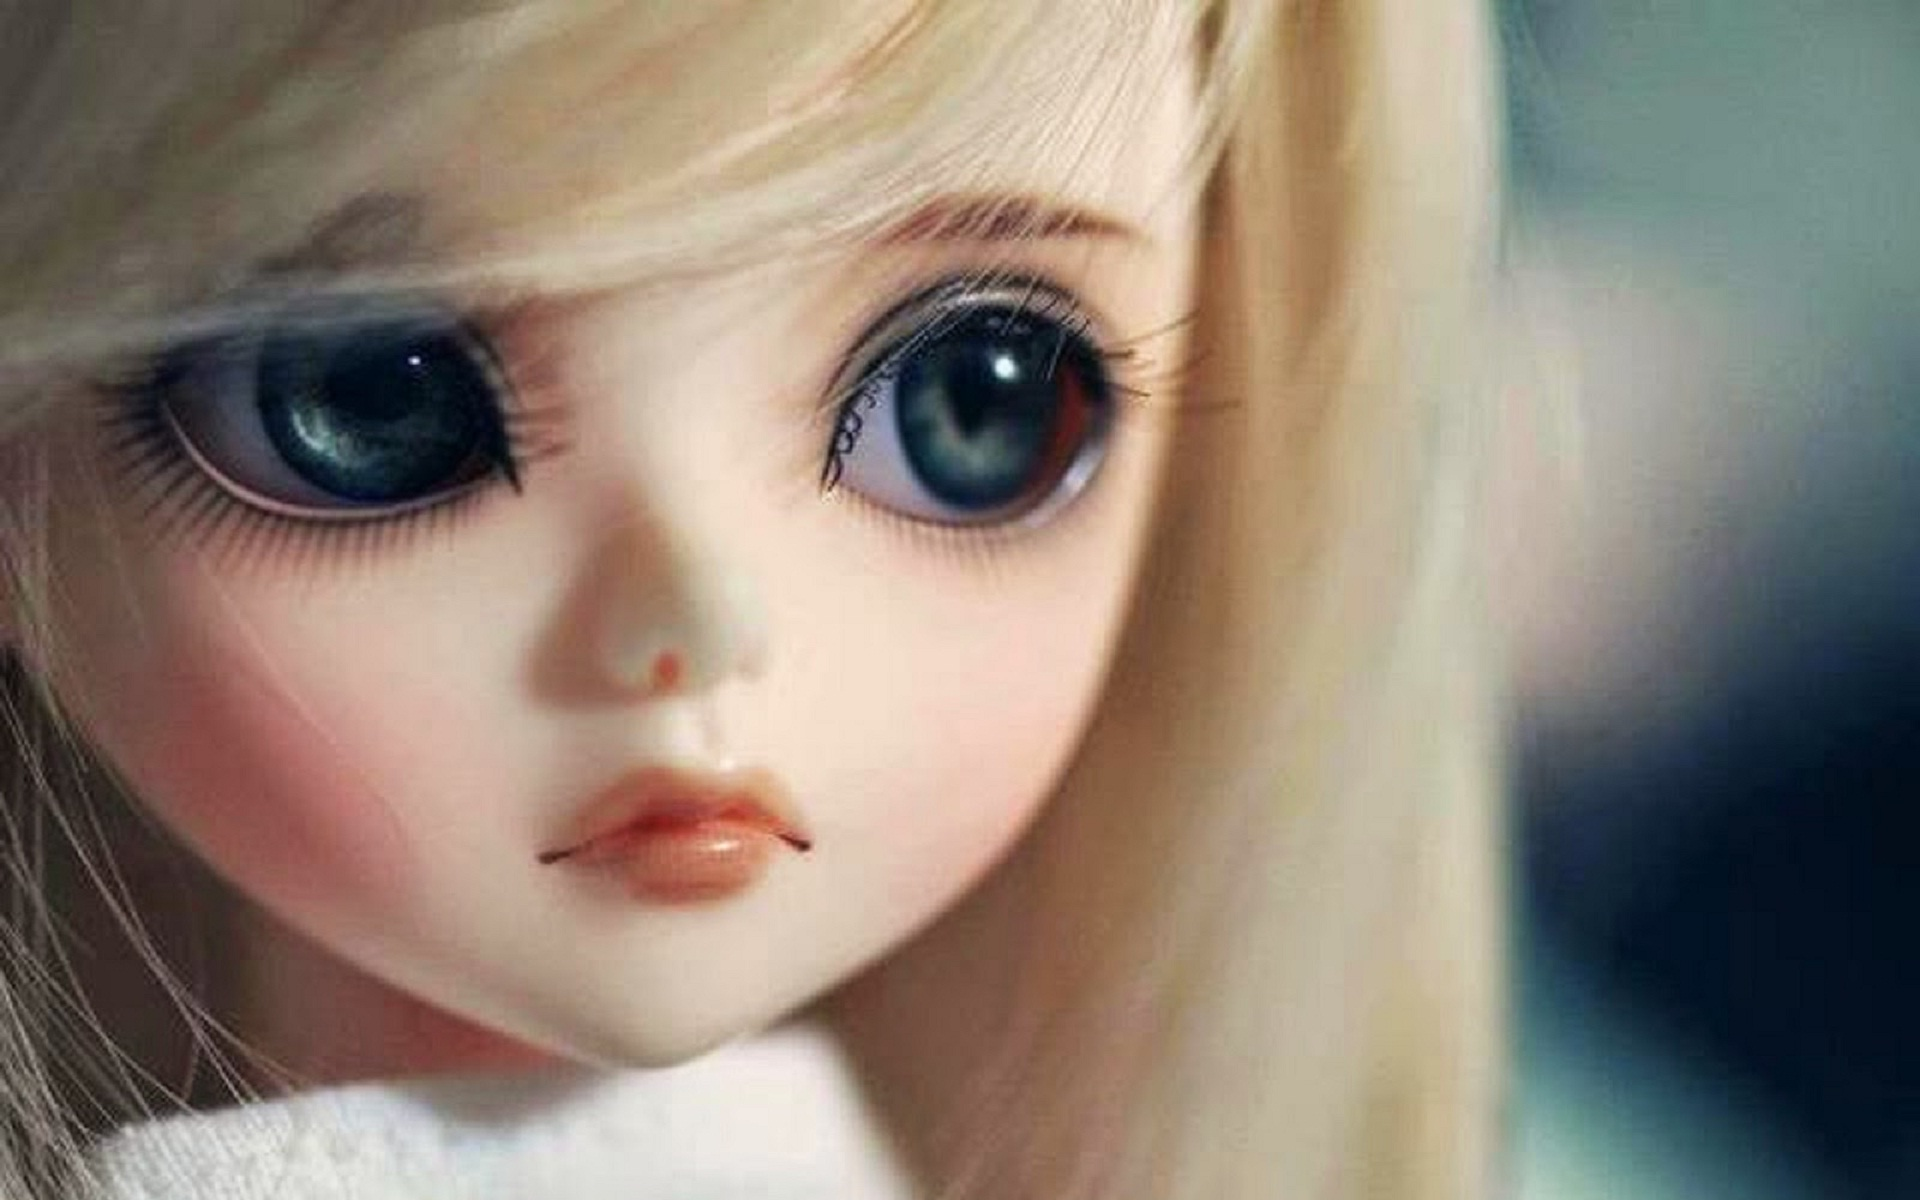 Cute Love Dolls Hd Wallpapers So Sweet And Pretty Doll Face Wallpaper Hd Wallpapers